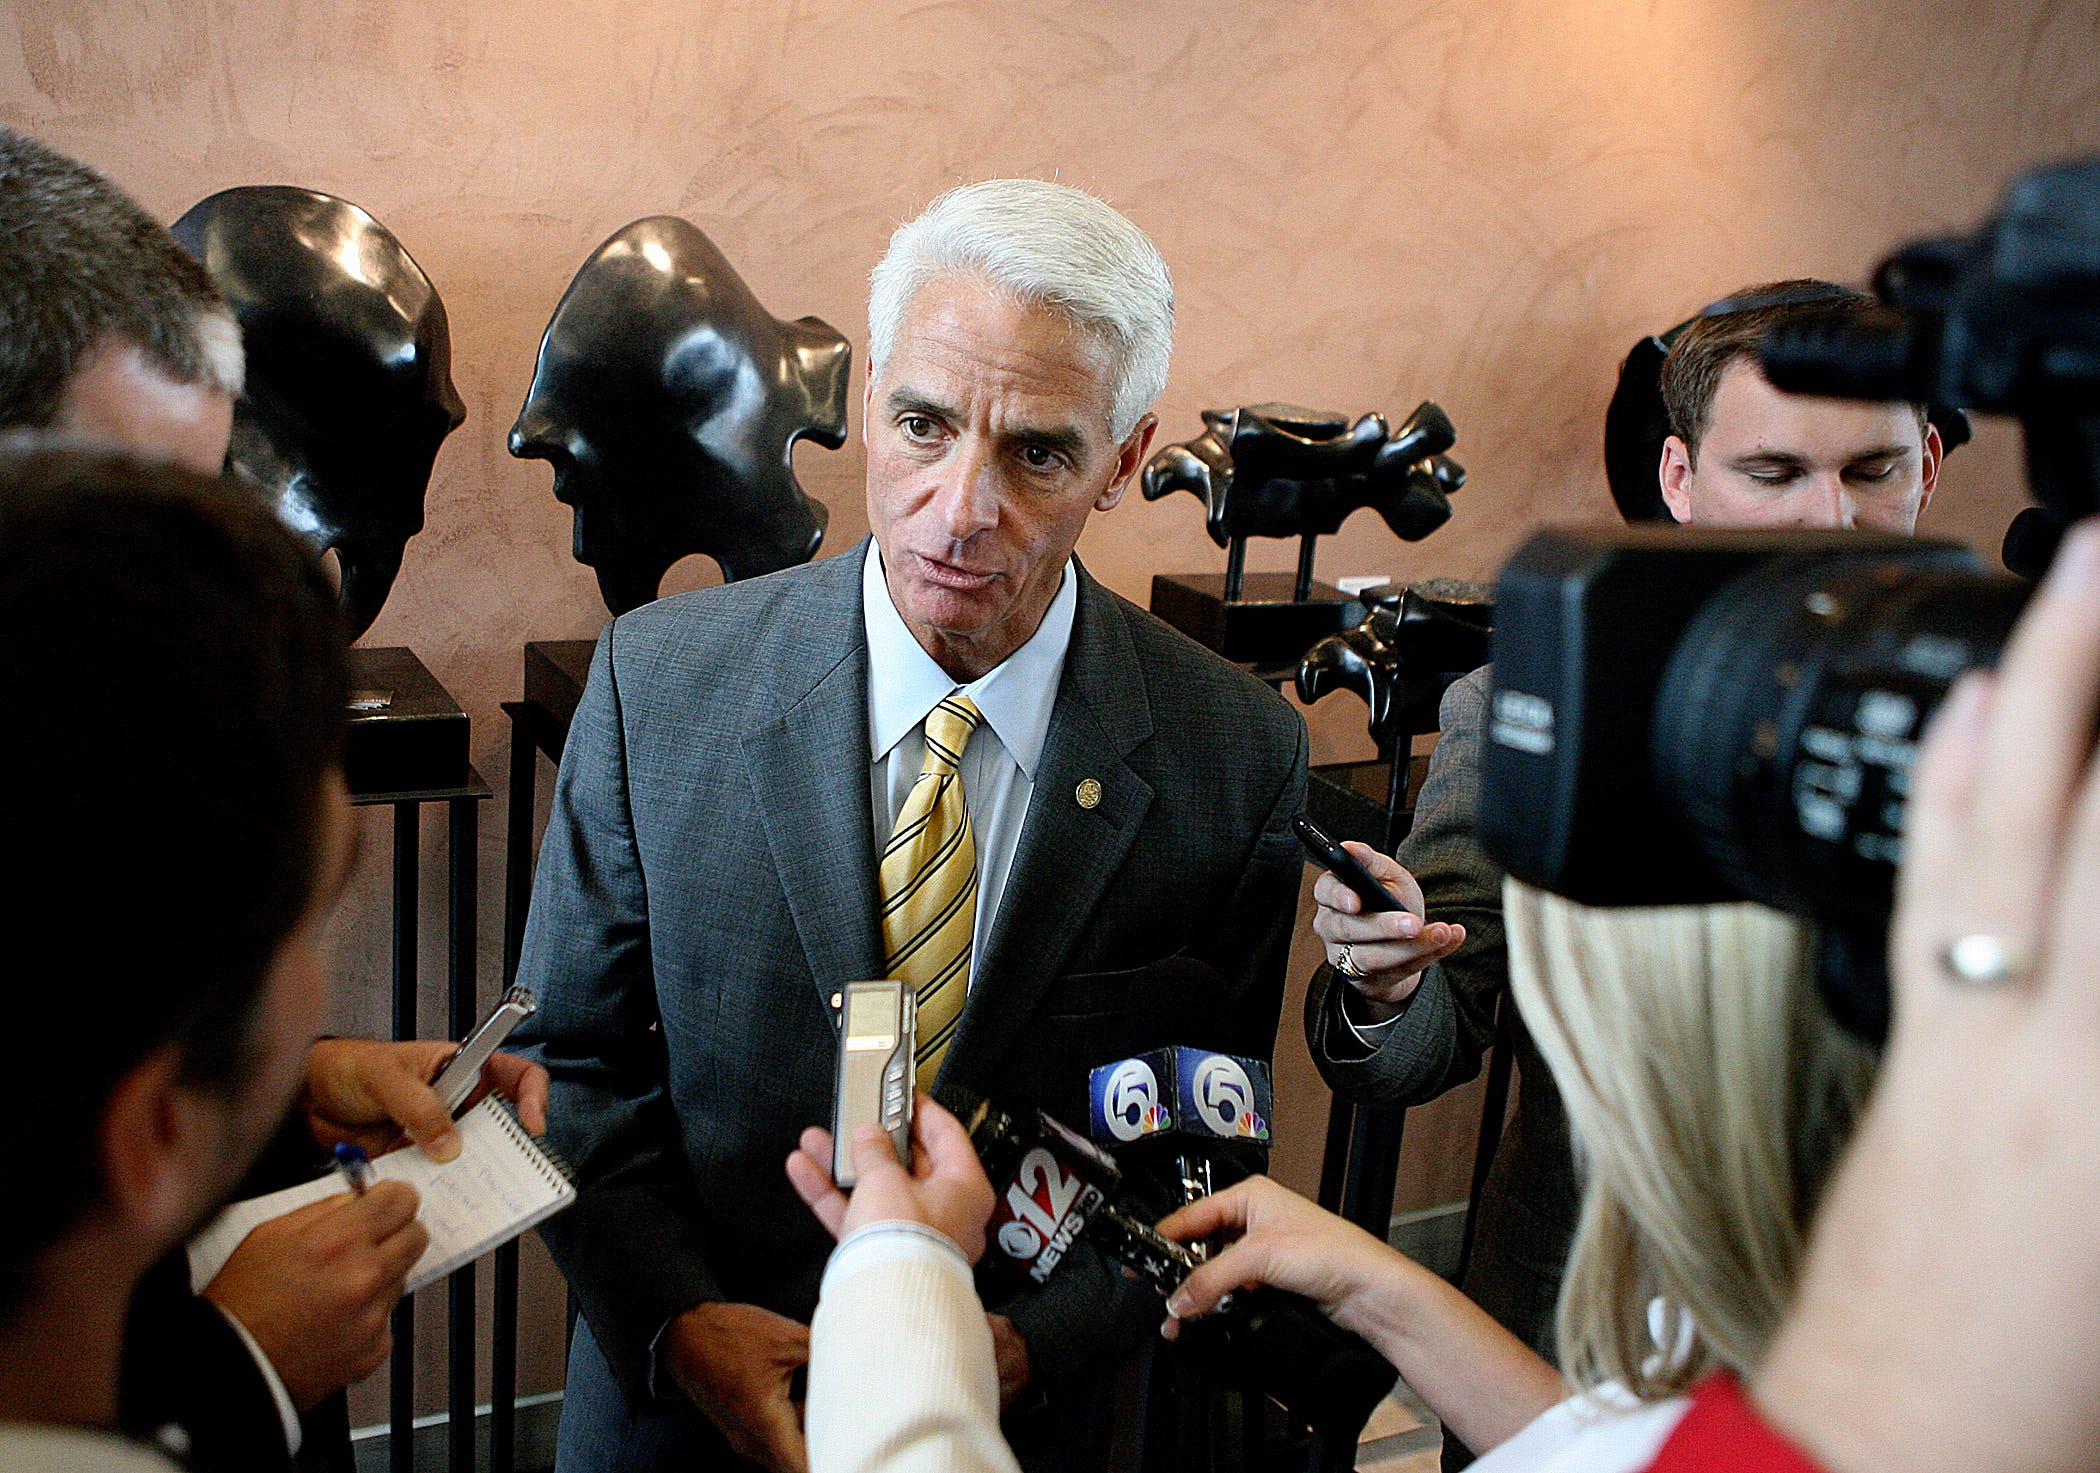 Florida congressman Charlie Crist expected to announce bid for governor next week 2